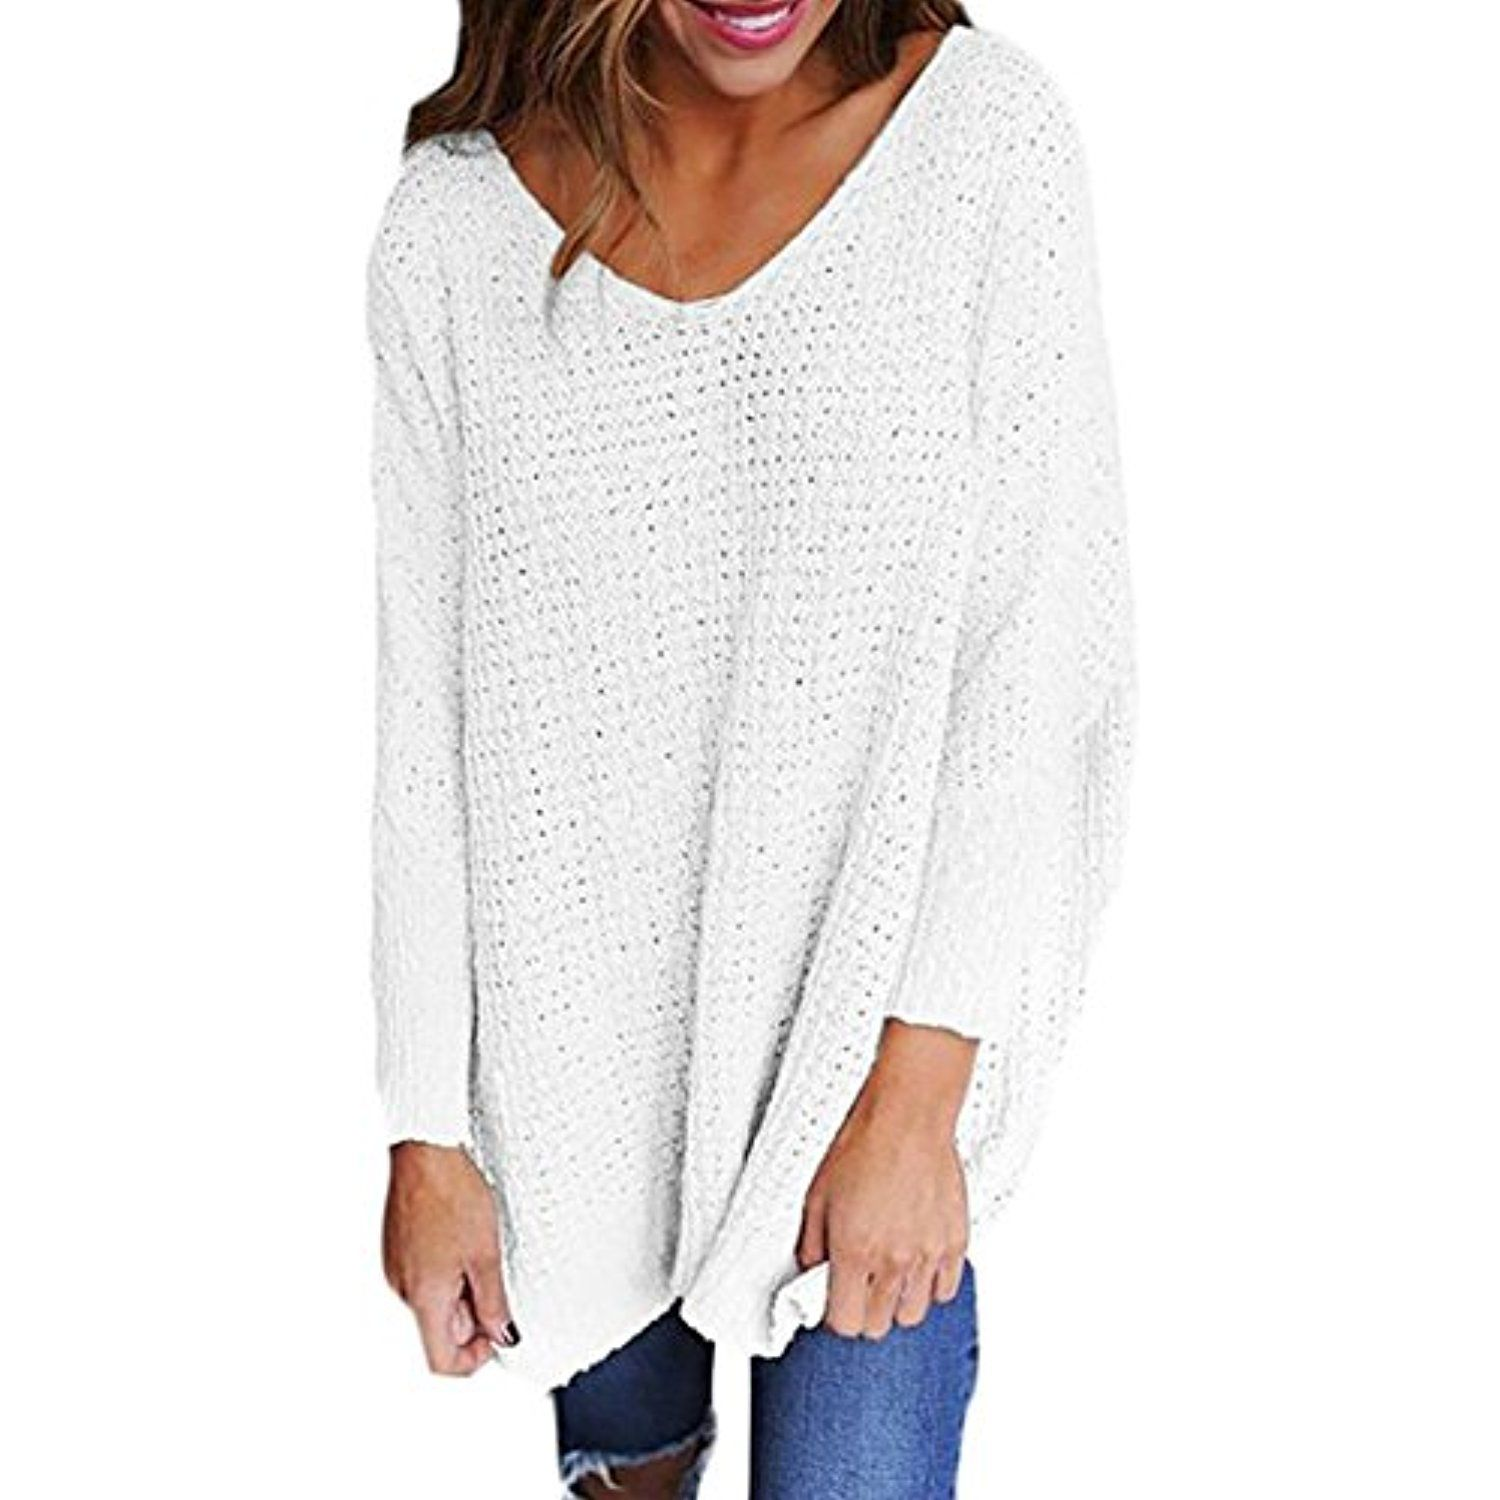 851b47e23ab8 save off 9ccee 6fd5a yishi women tops oversized sweaters loose ...